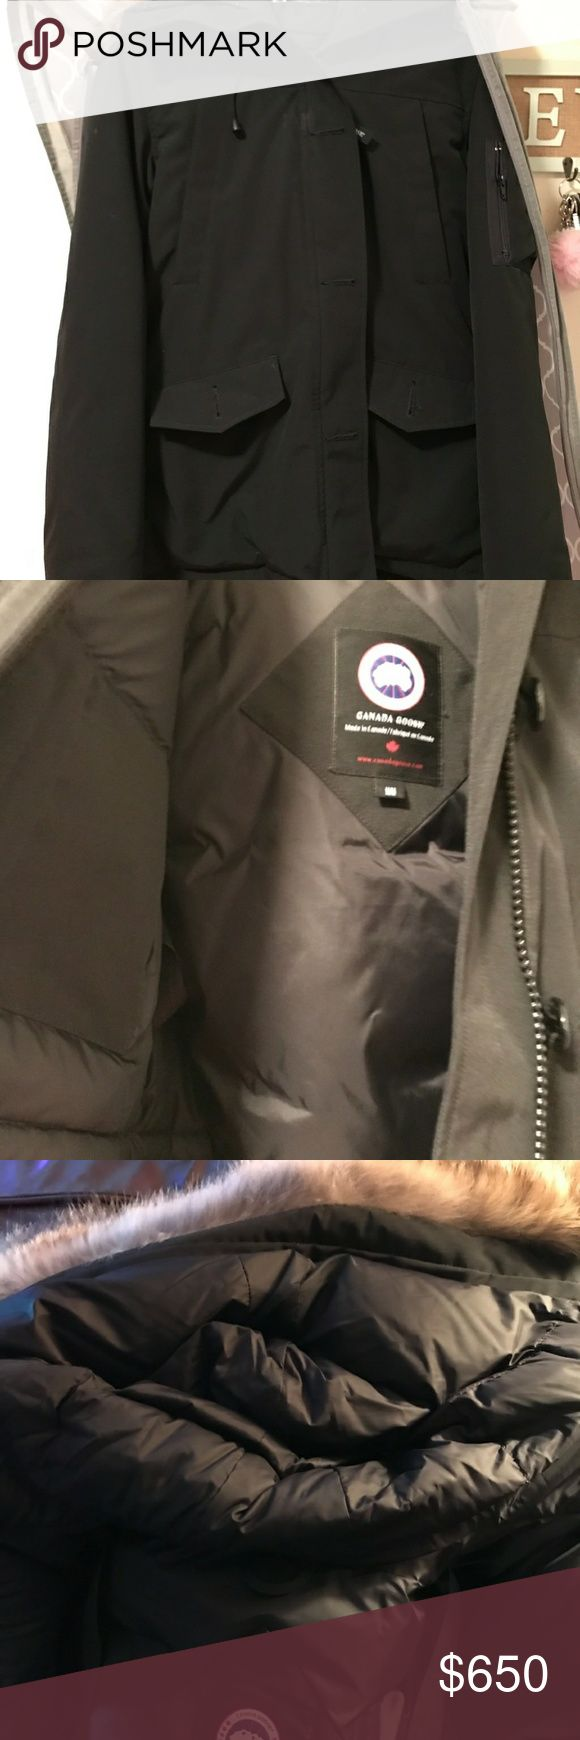 Gently used Canadian Goose down coat Medium, black with coyote trimmed fur hood, removable as well Canada Goose Jackets & Coats Puffers